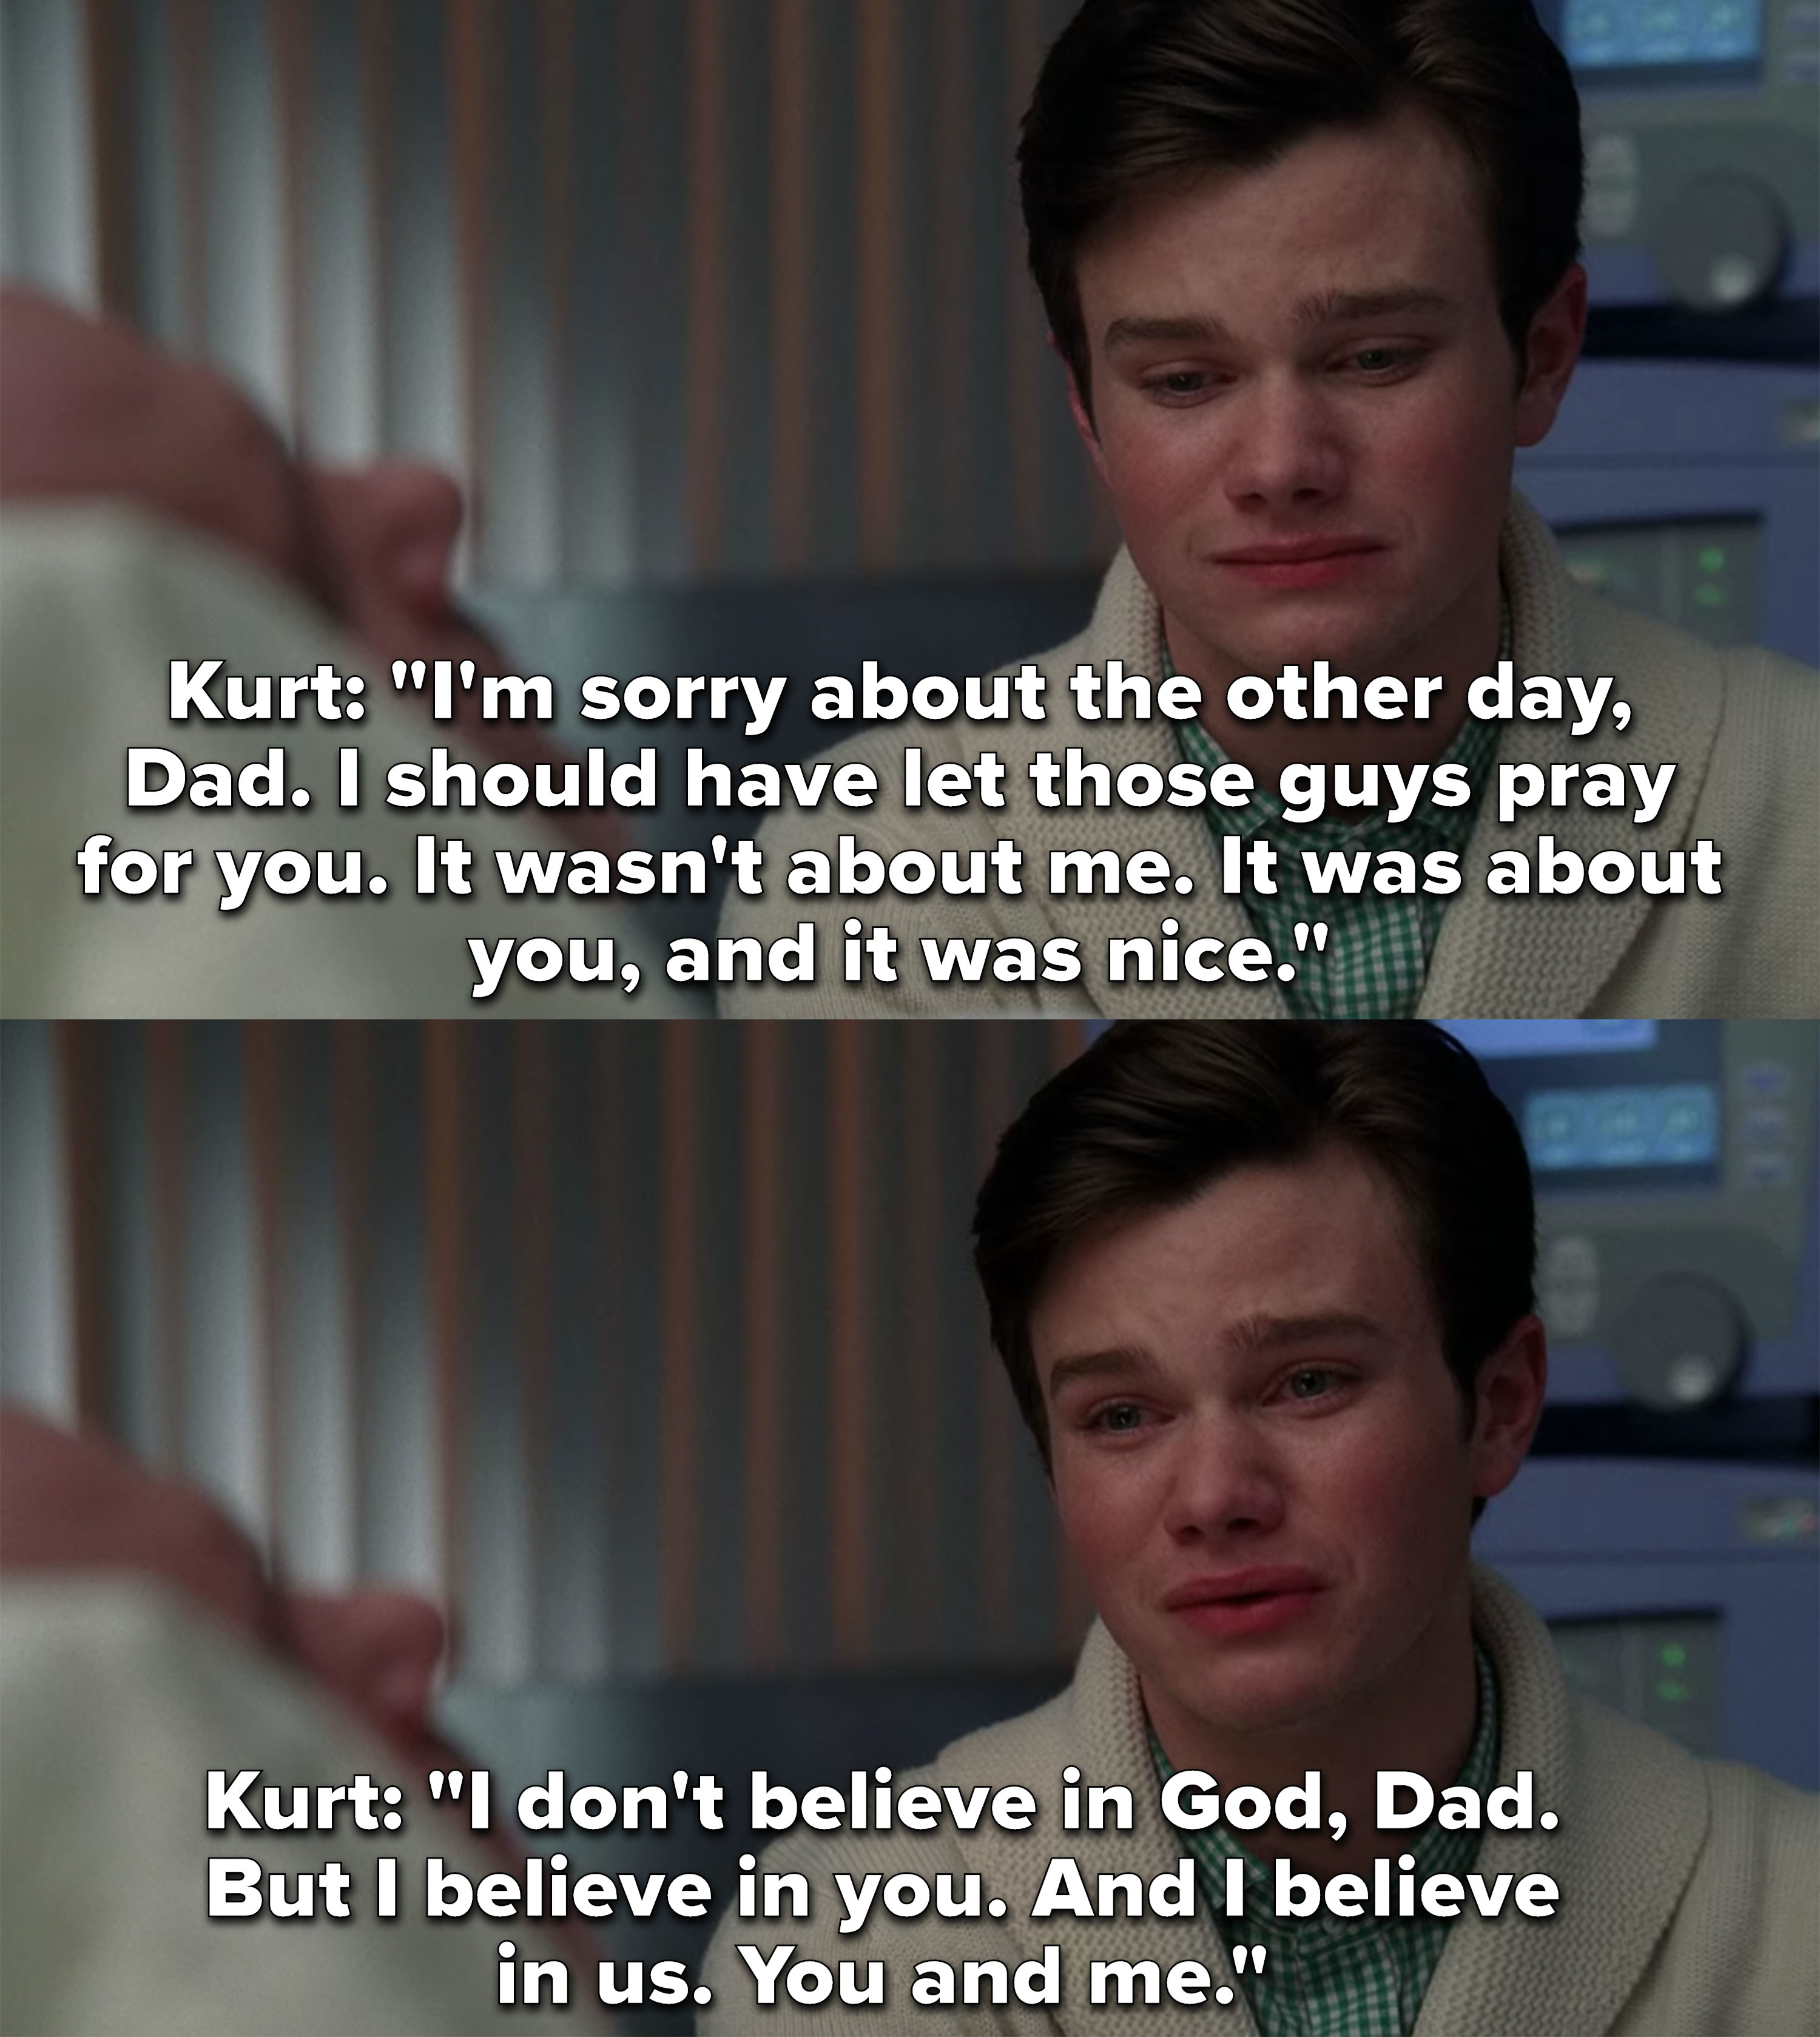 Kurt tells his dad he doesn't believe in God, but he believes in him and their relationship